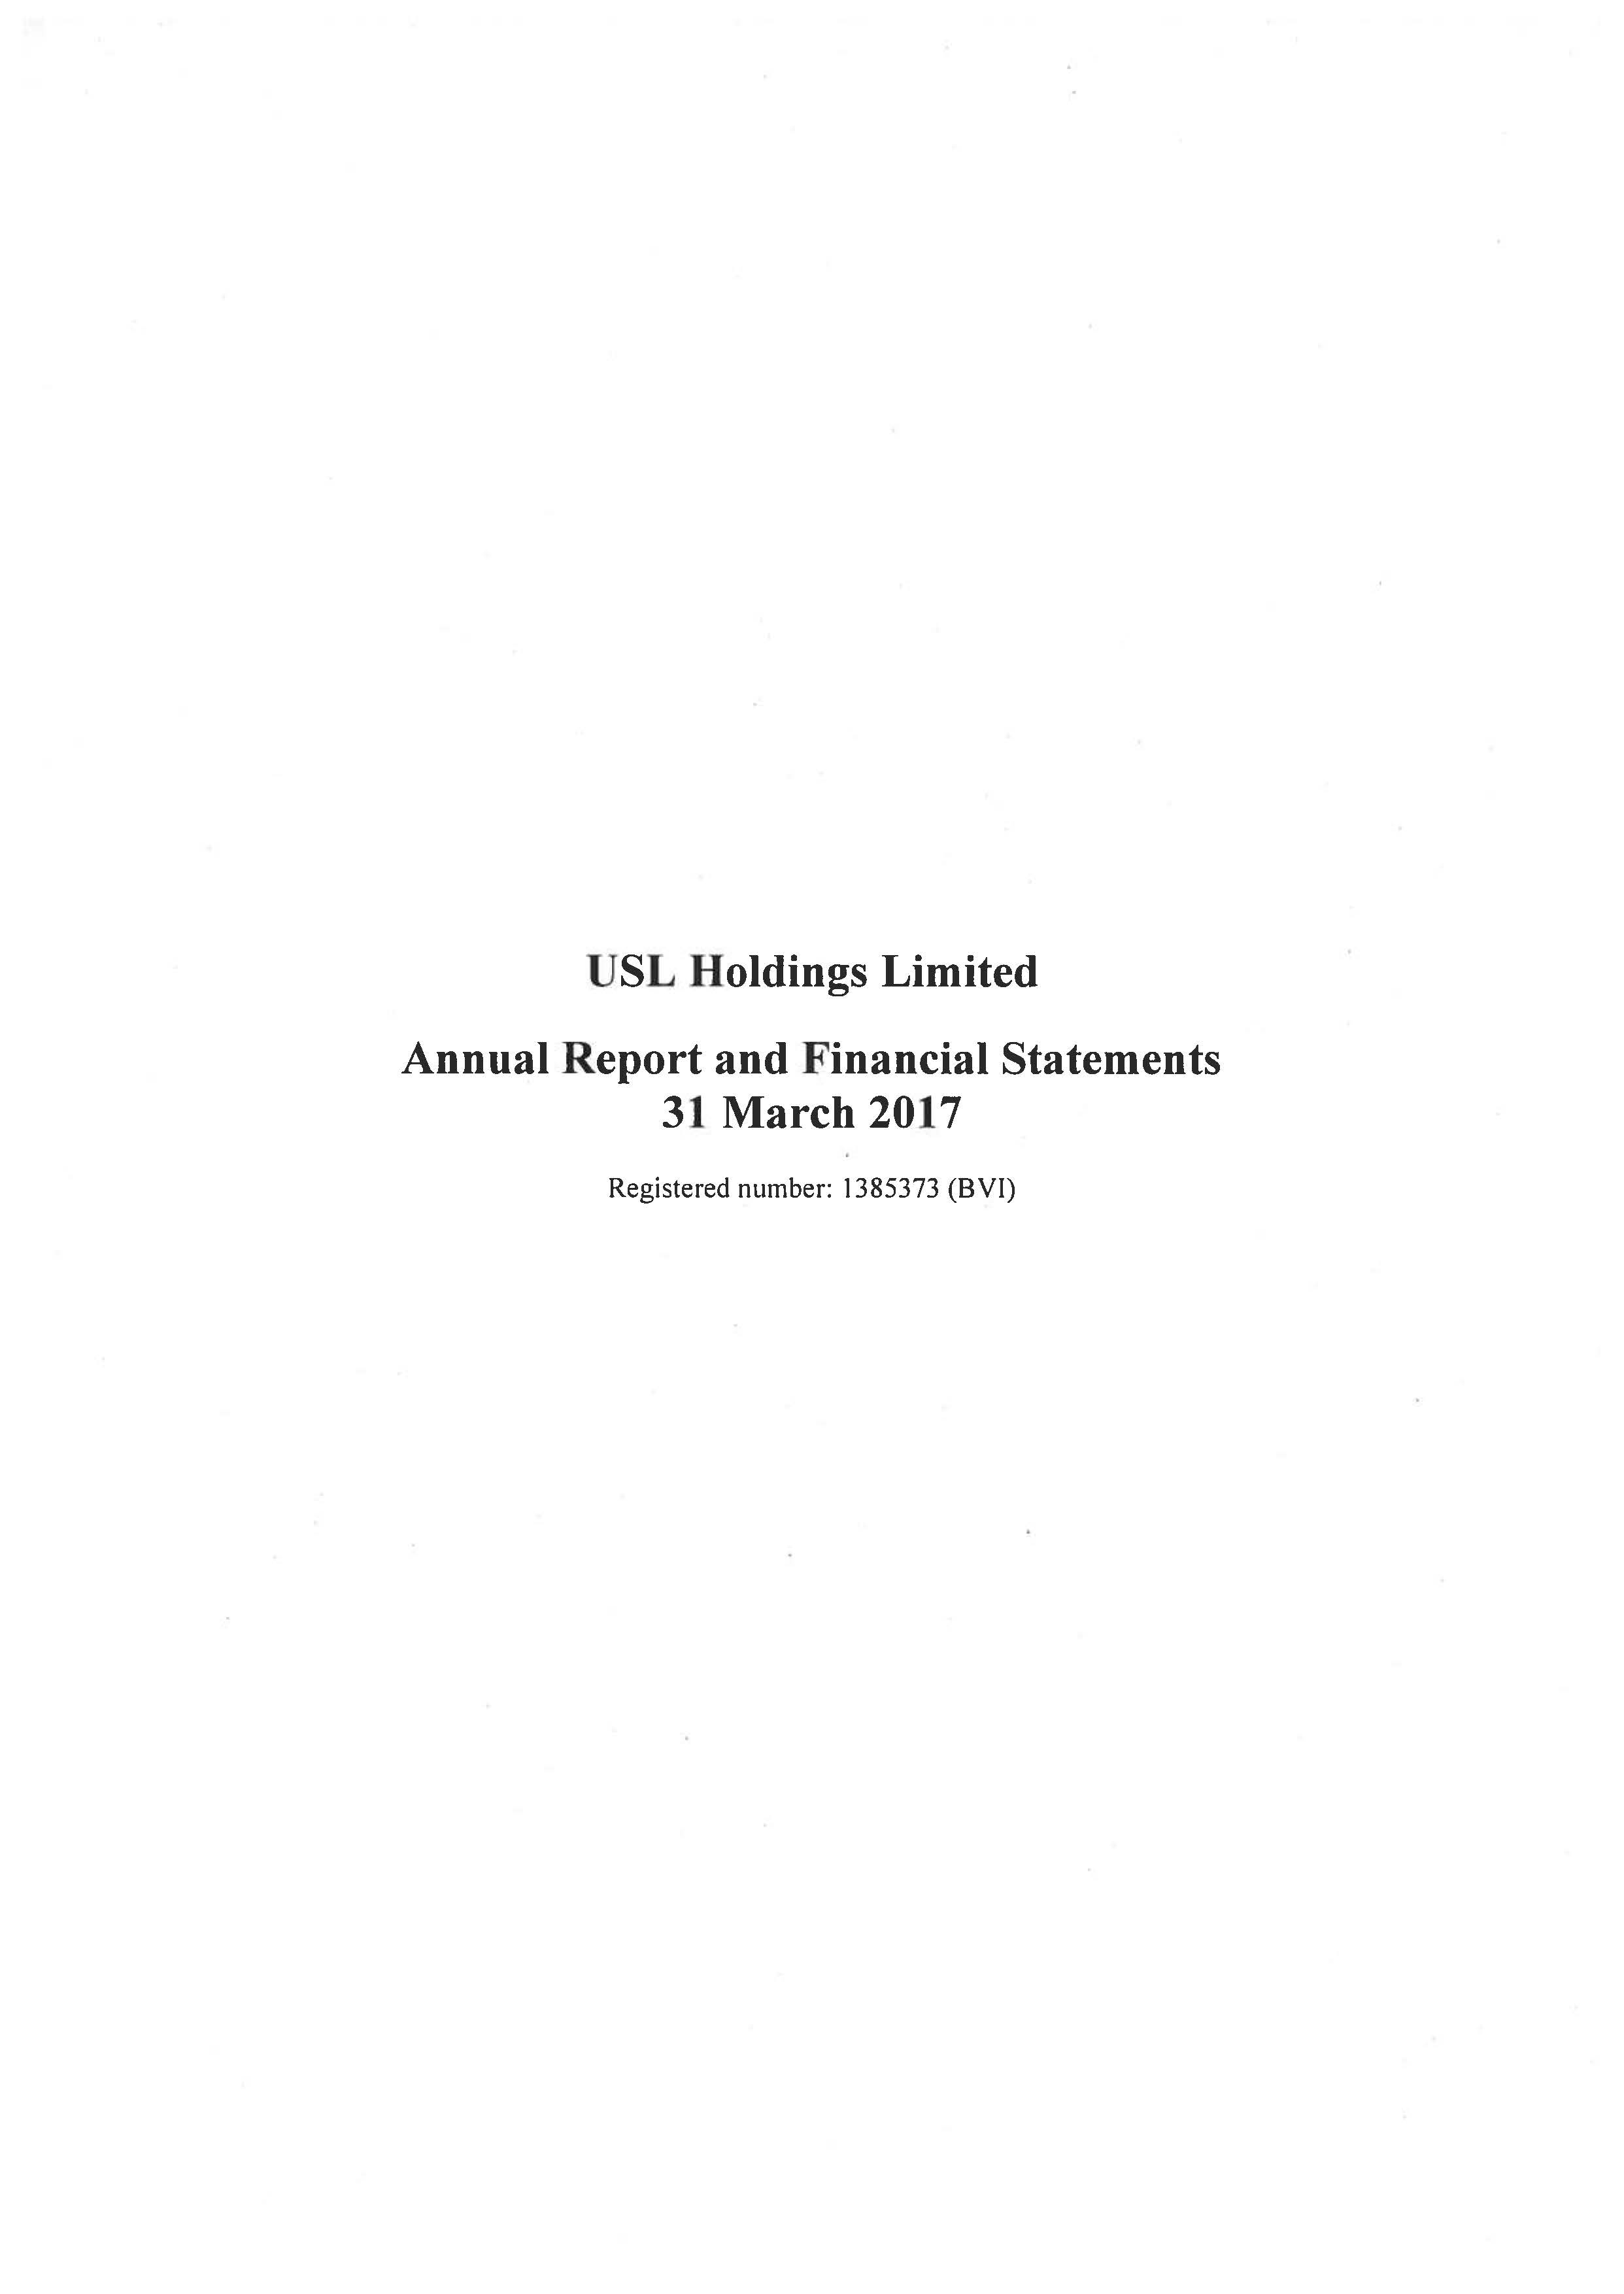 USL Holdings Ltd 2016-2017